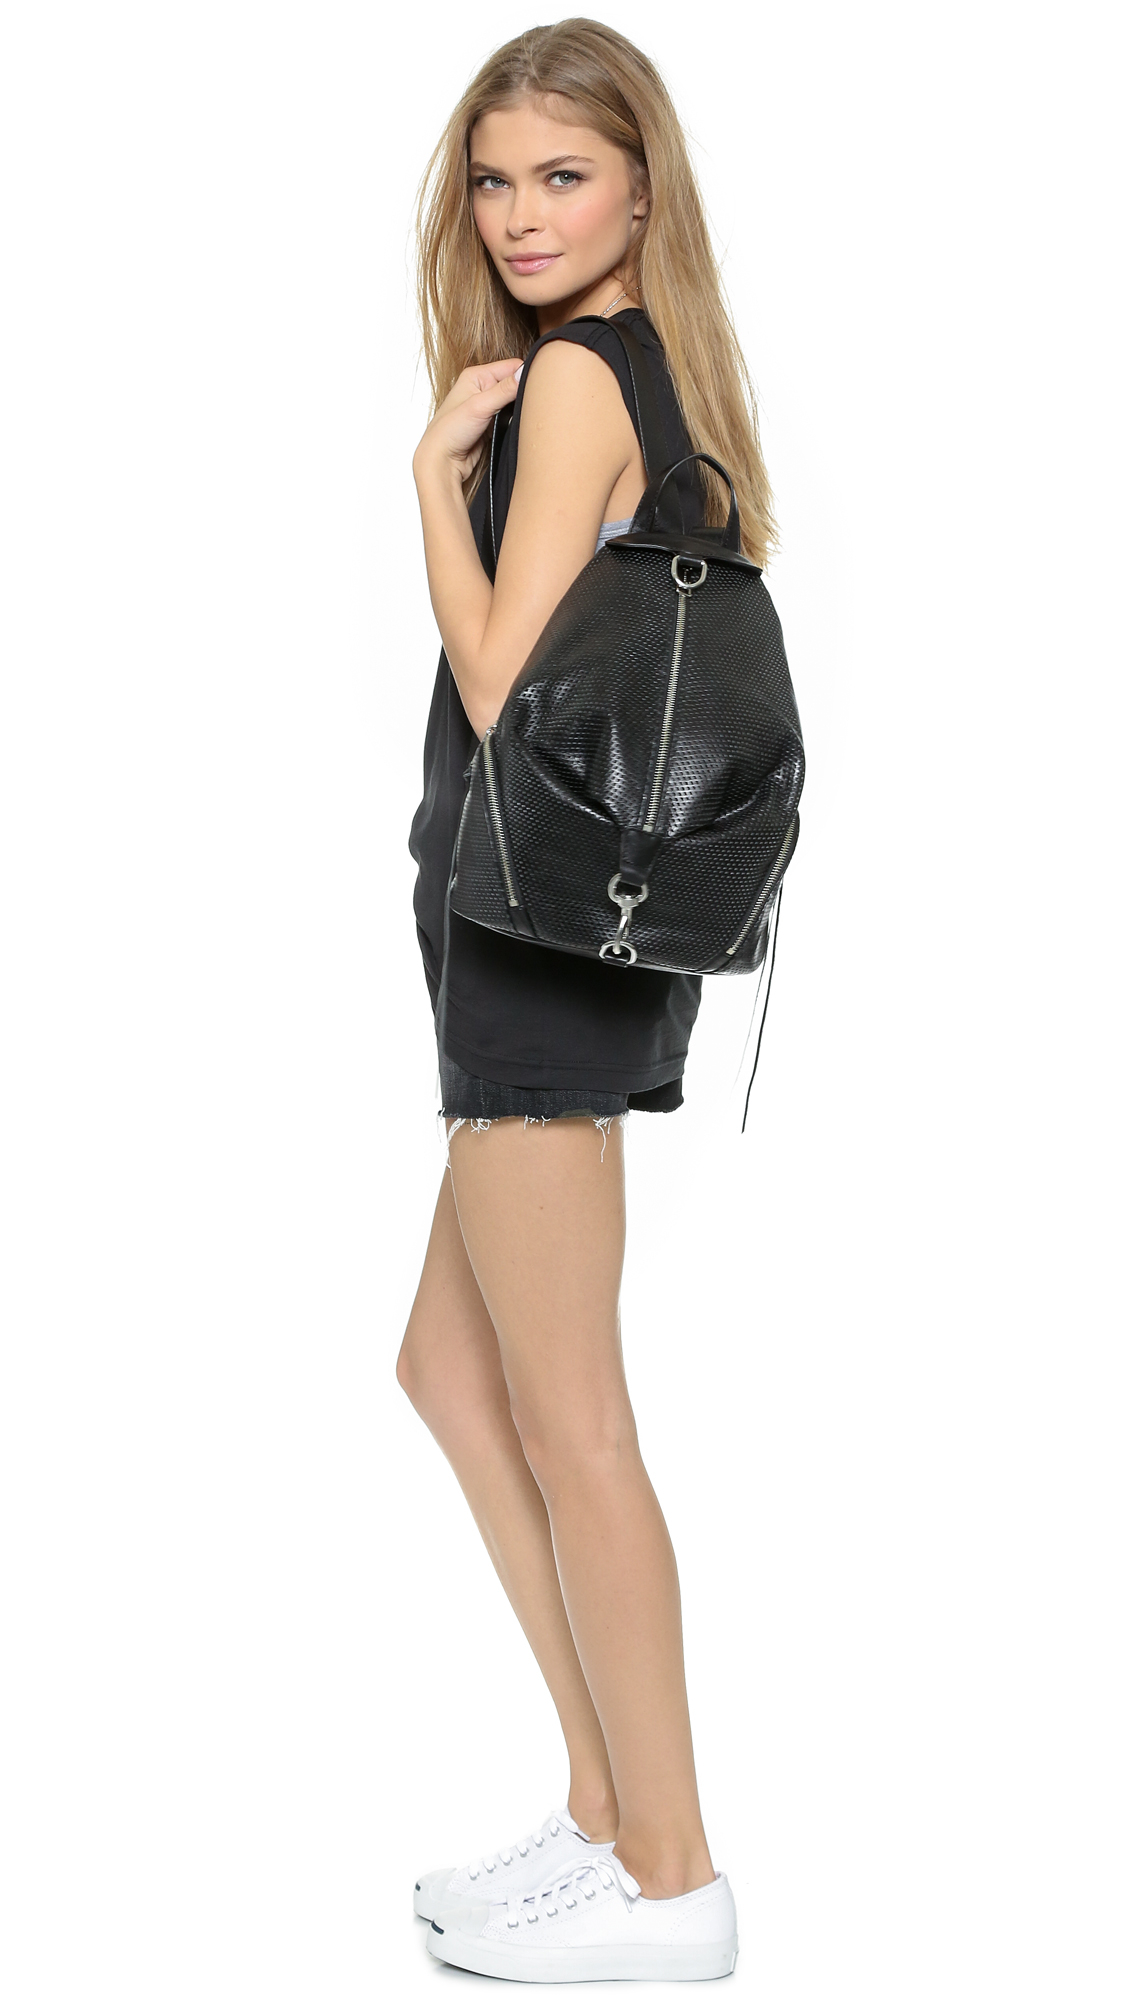 75a4ede4ed0 Rebecca Minkoff Perforated Julian Backpack - Black in Gray - Lyst